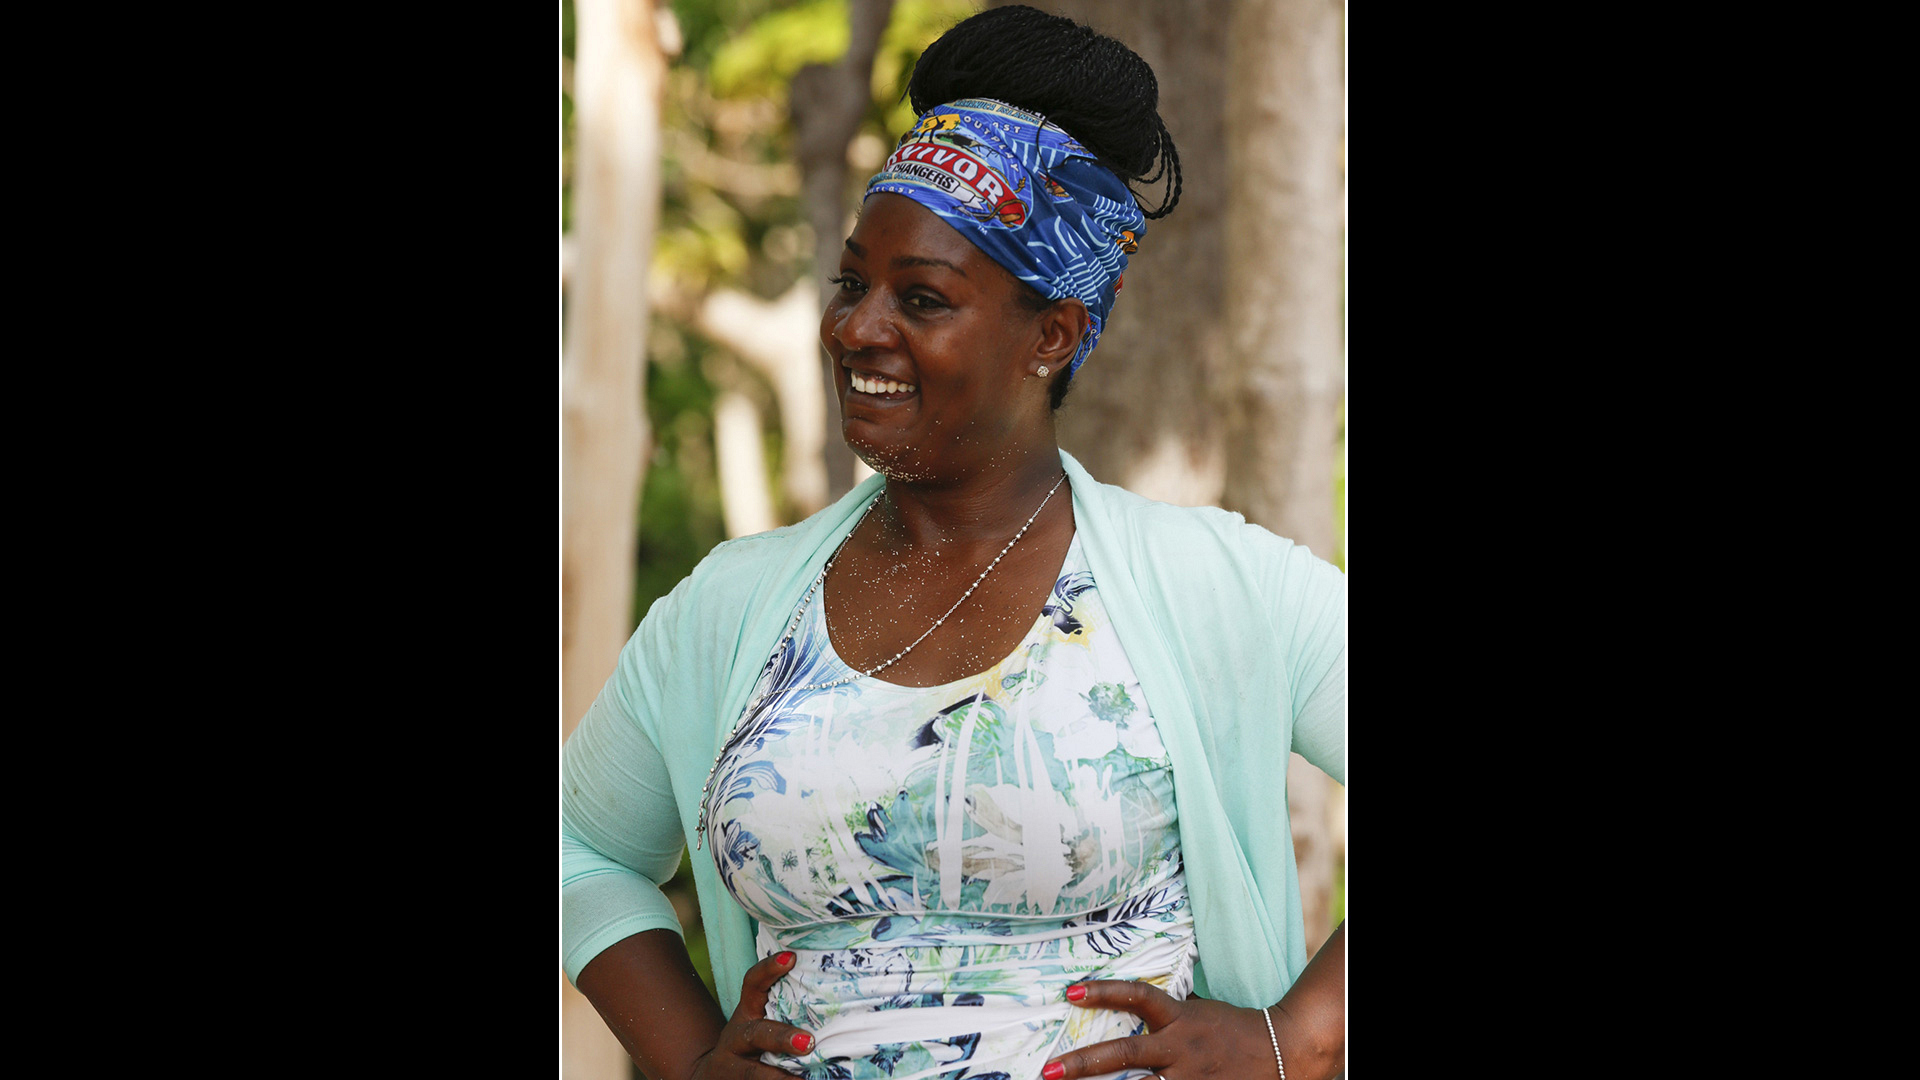 Three-time castaway Cirie Fields looks happy to play the game she loves so much.